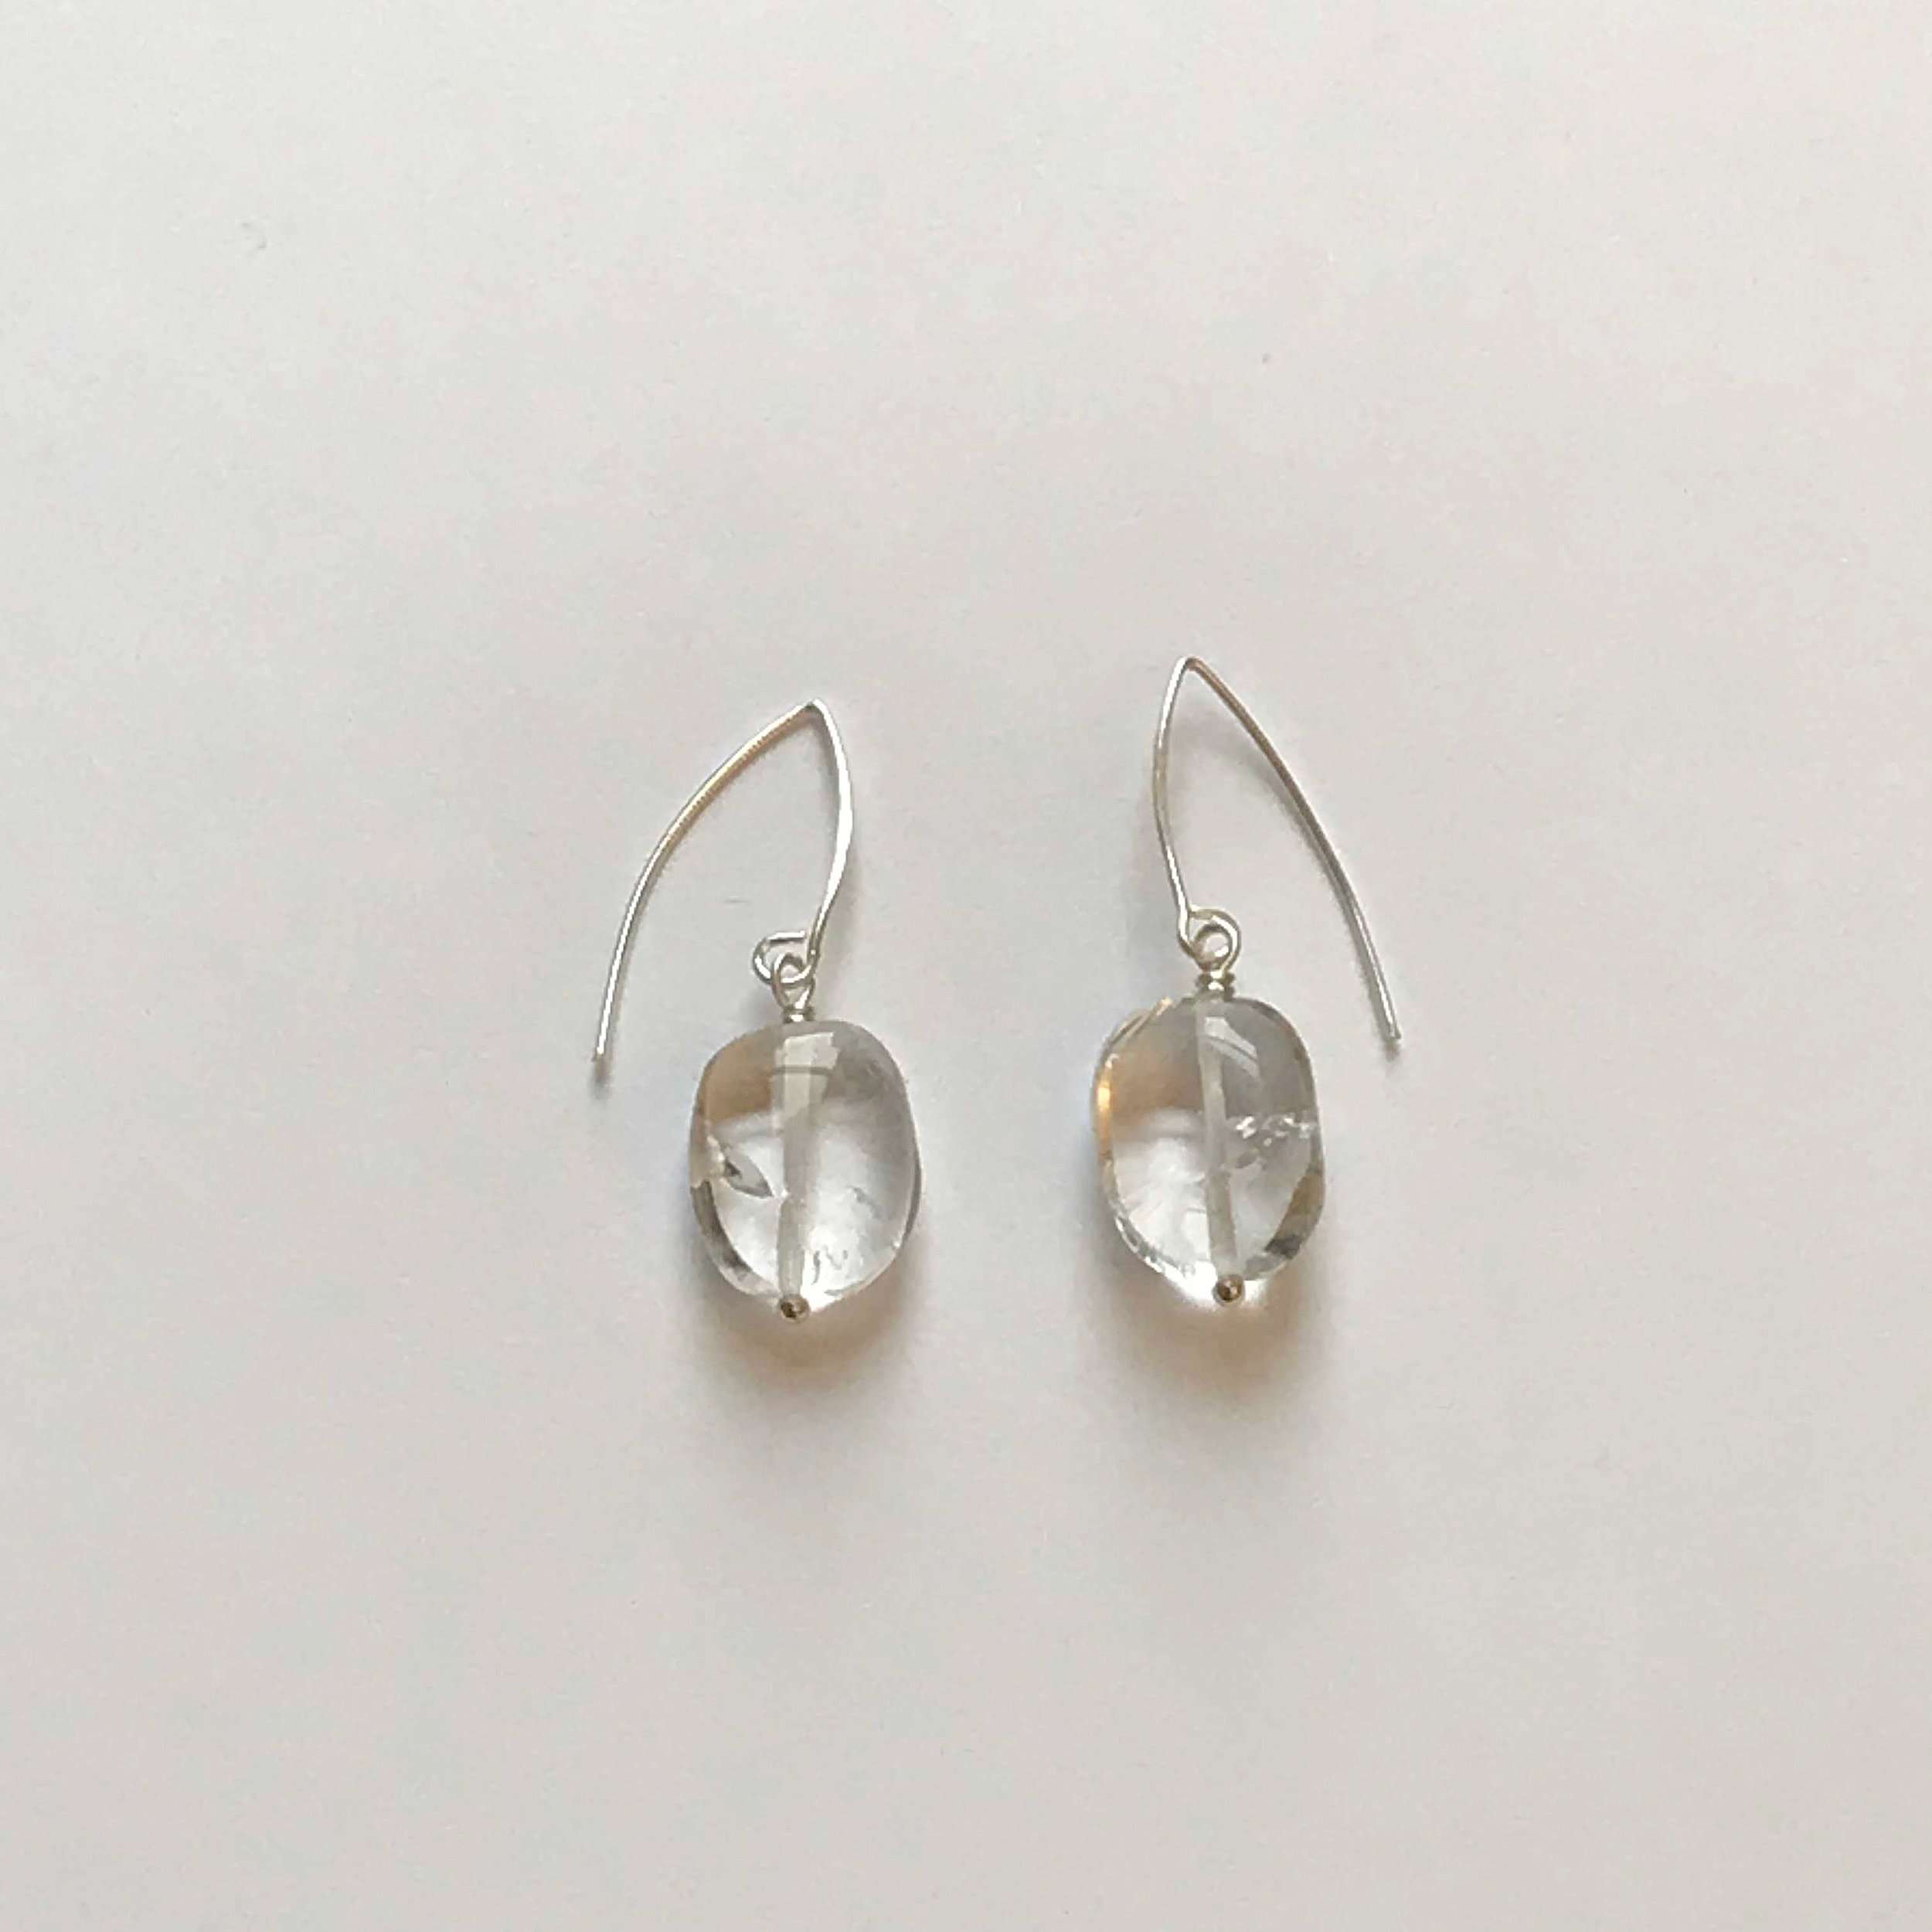 $50 Sterling Silver Rock Crystal Earrings